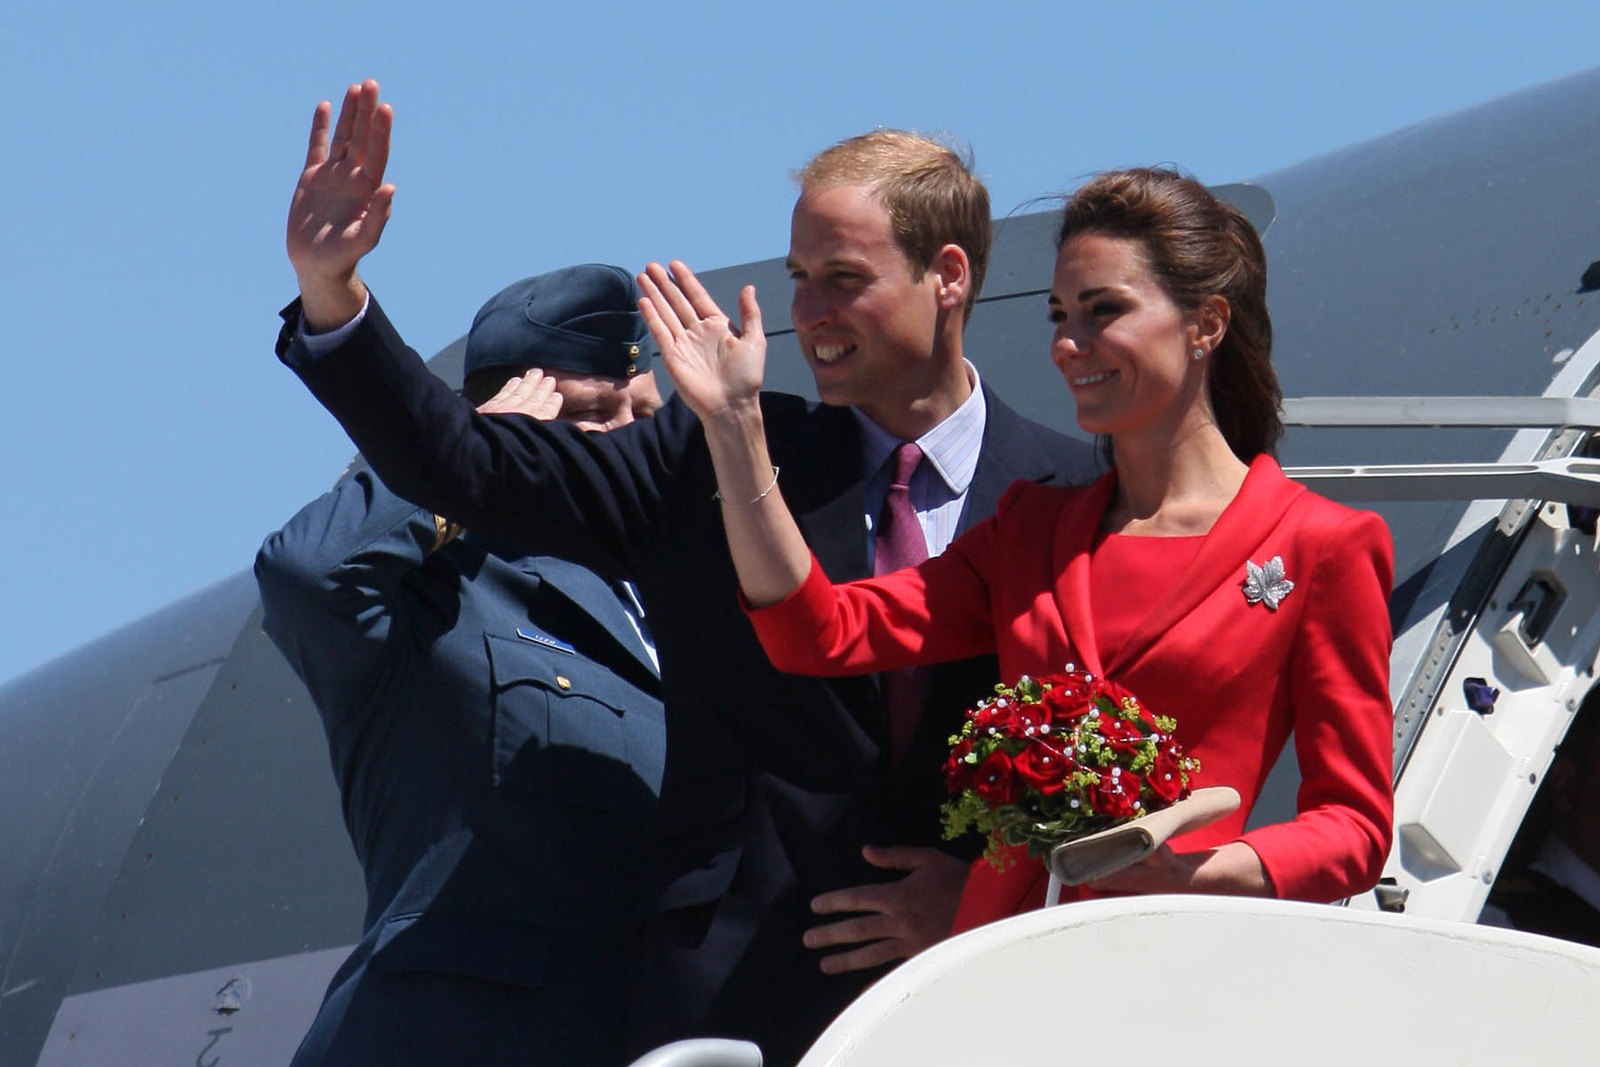 The Duke and Duchess of Cambridge leaving Canada in 2011